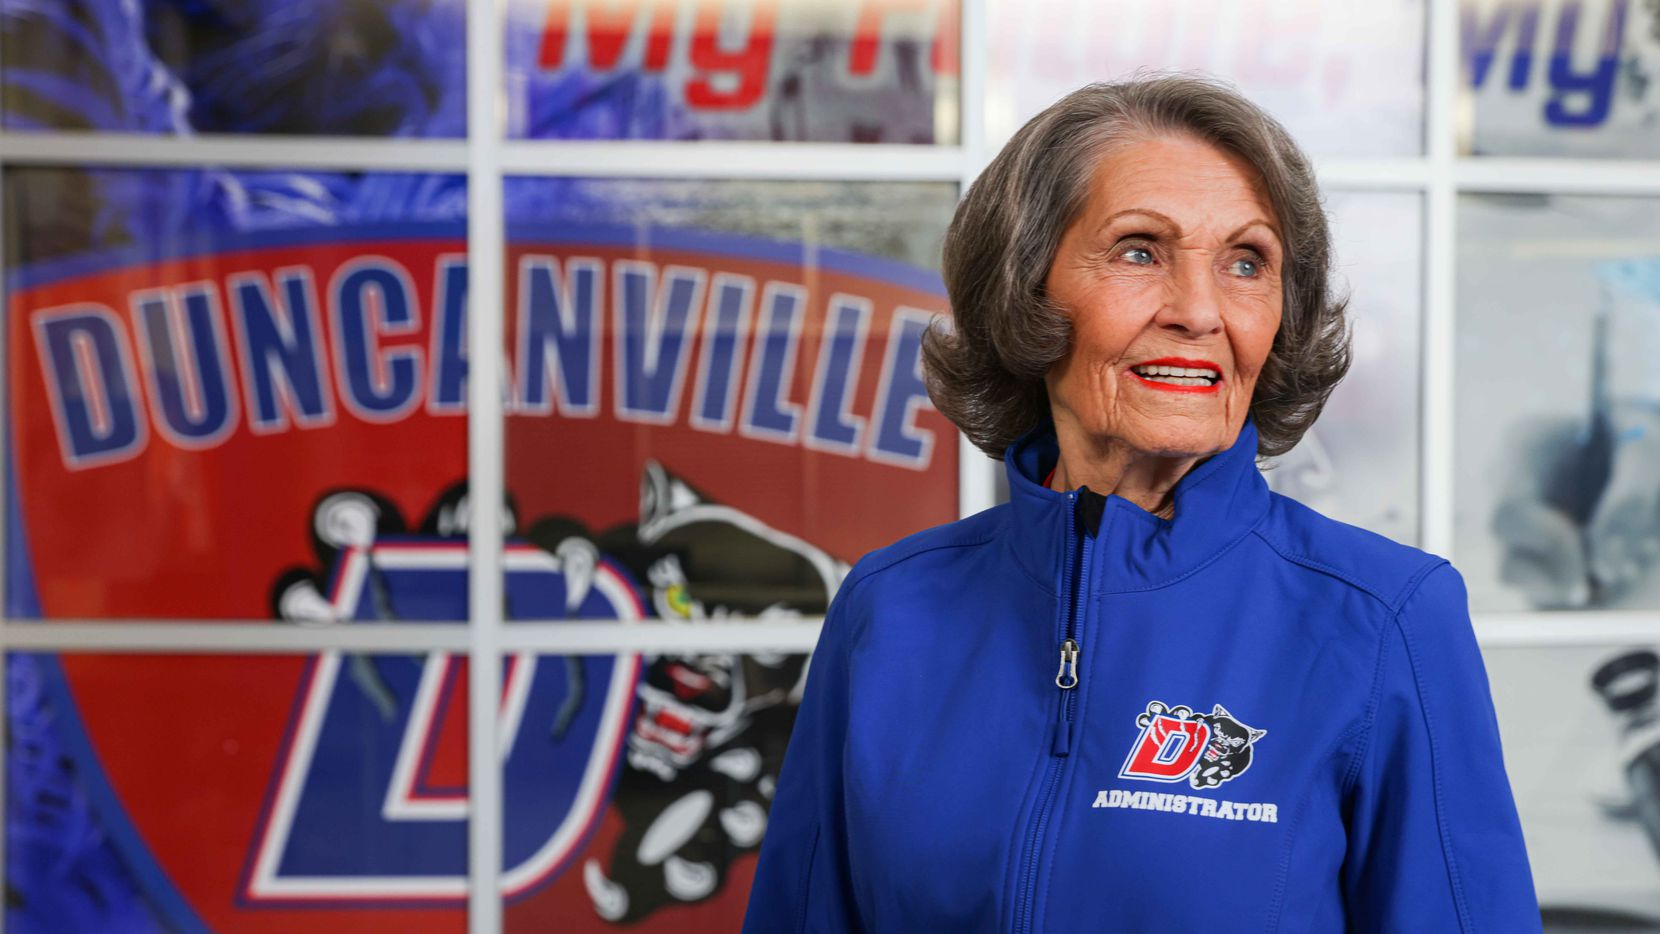 Flo Judd poses in the main hall of the school in Duncanville on Jan. 29, 2021. Judd, 81-year-old associate principal at Duncanville High School, is in her 50th year in education. Like nearly all K-12 educators in Texas, she's working on campus every day, but she hasn't been able to find a coronavirus vaccine, despite signing up with multiple counties around the Dallas area.